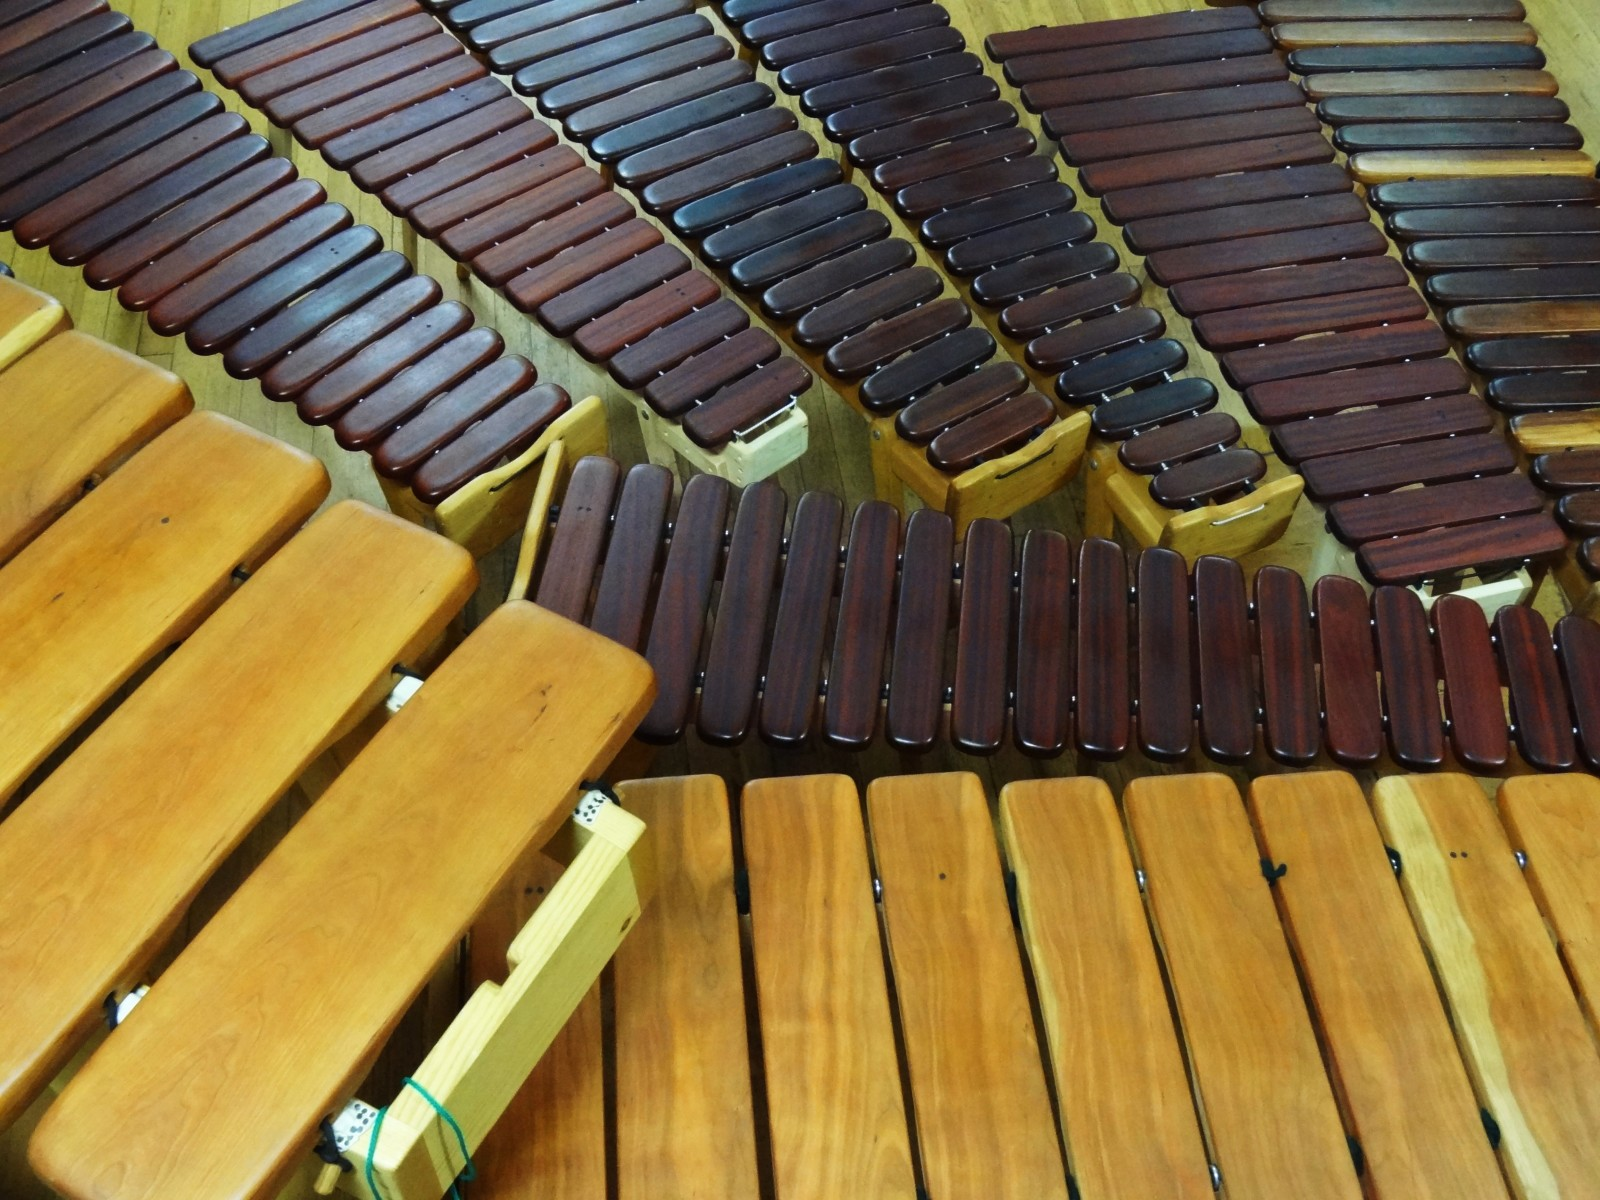 19 Marimba workshop